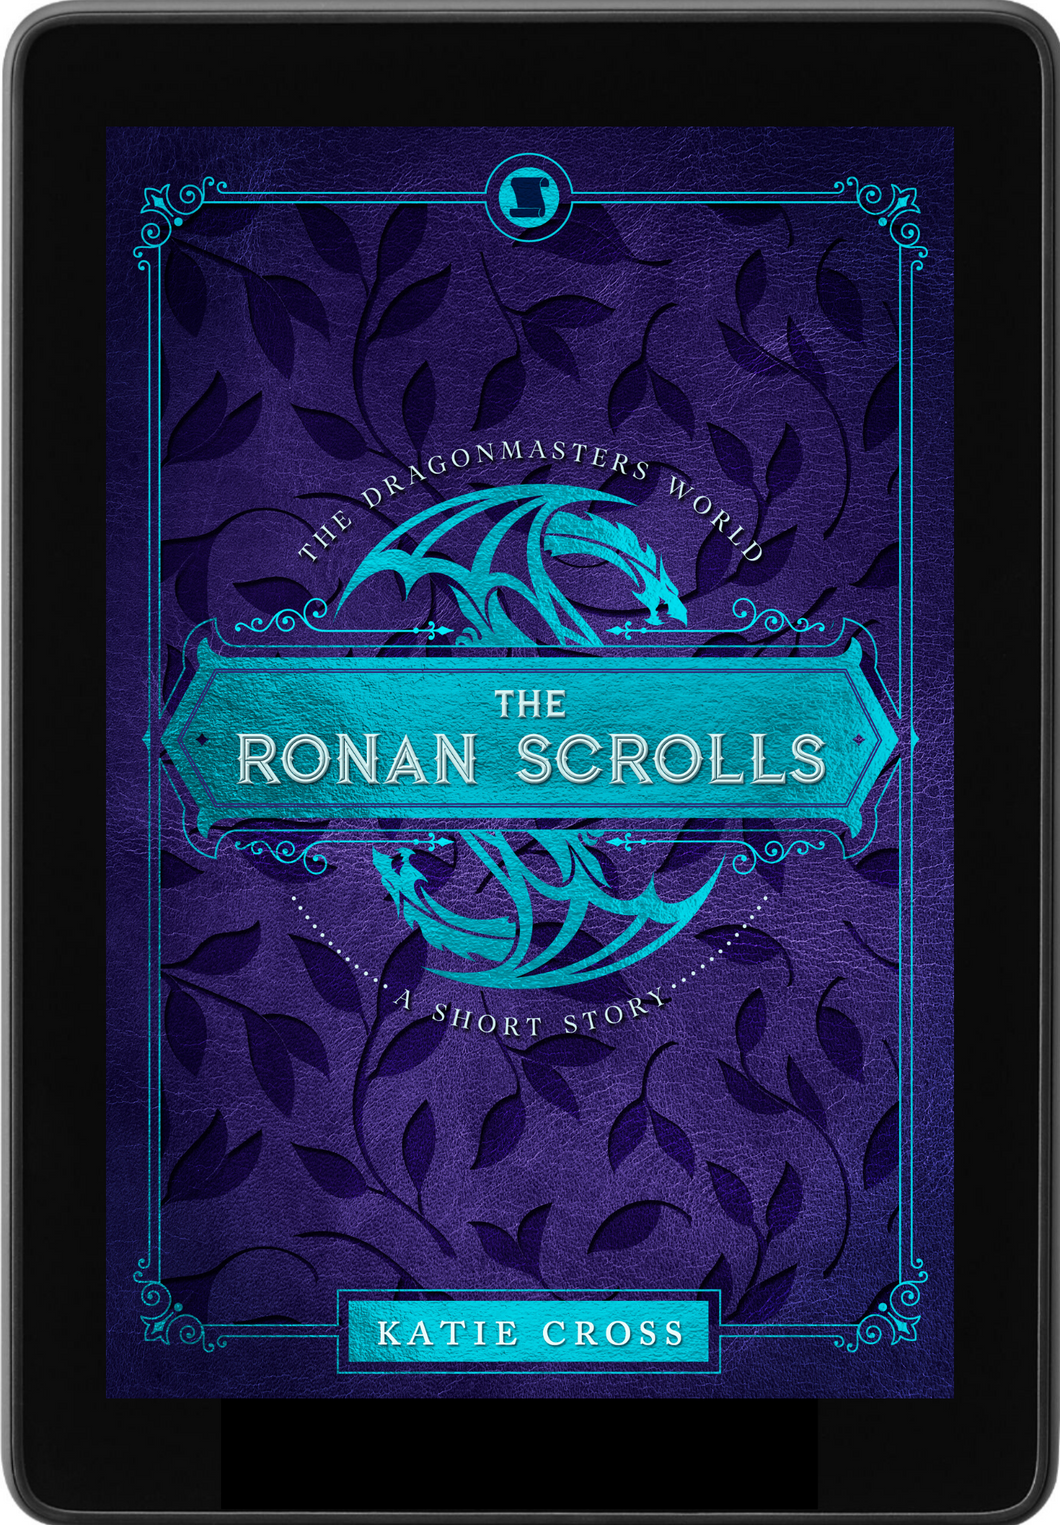 The Ronan Scrolls (Companion Novella to The Dragonmaster Trilogy)